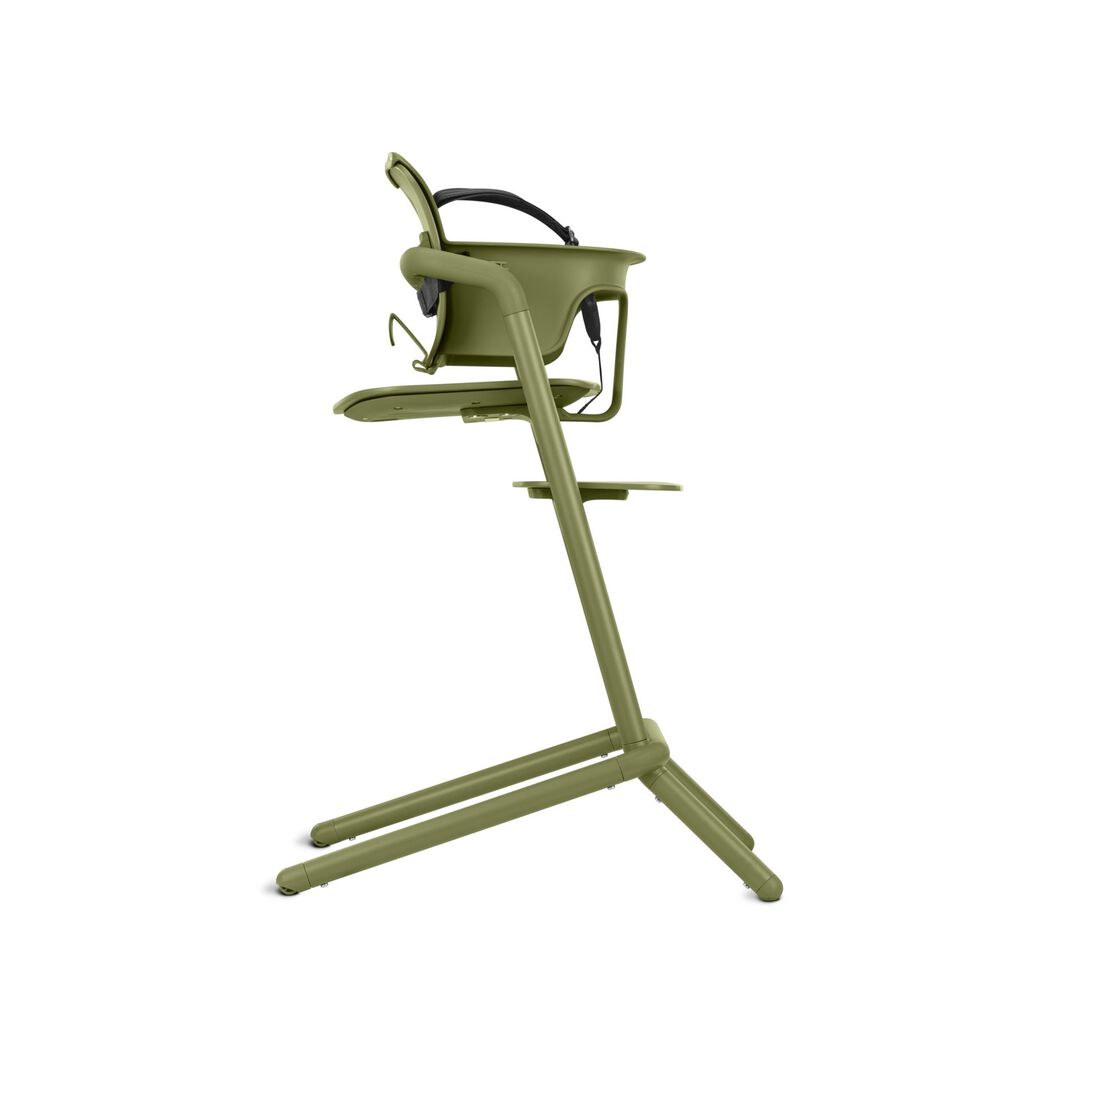 CYBEX Lemo Baby Set 2 - Outback Green in Outback Green large